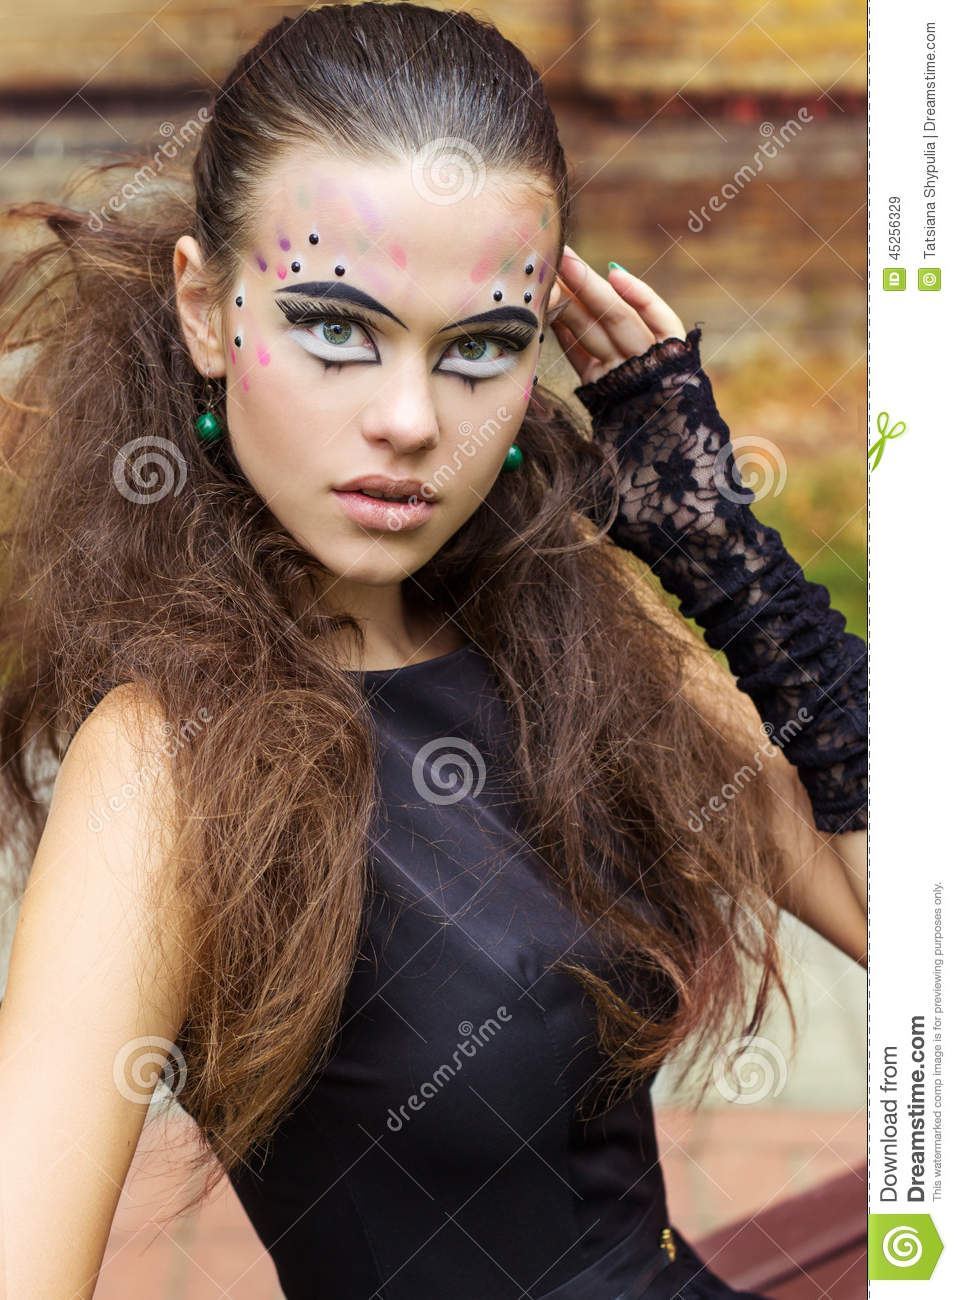 Beautiful young girl on the background of the leaves in autumn day on the street with fantasy makeup in a black dress